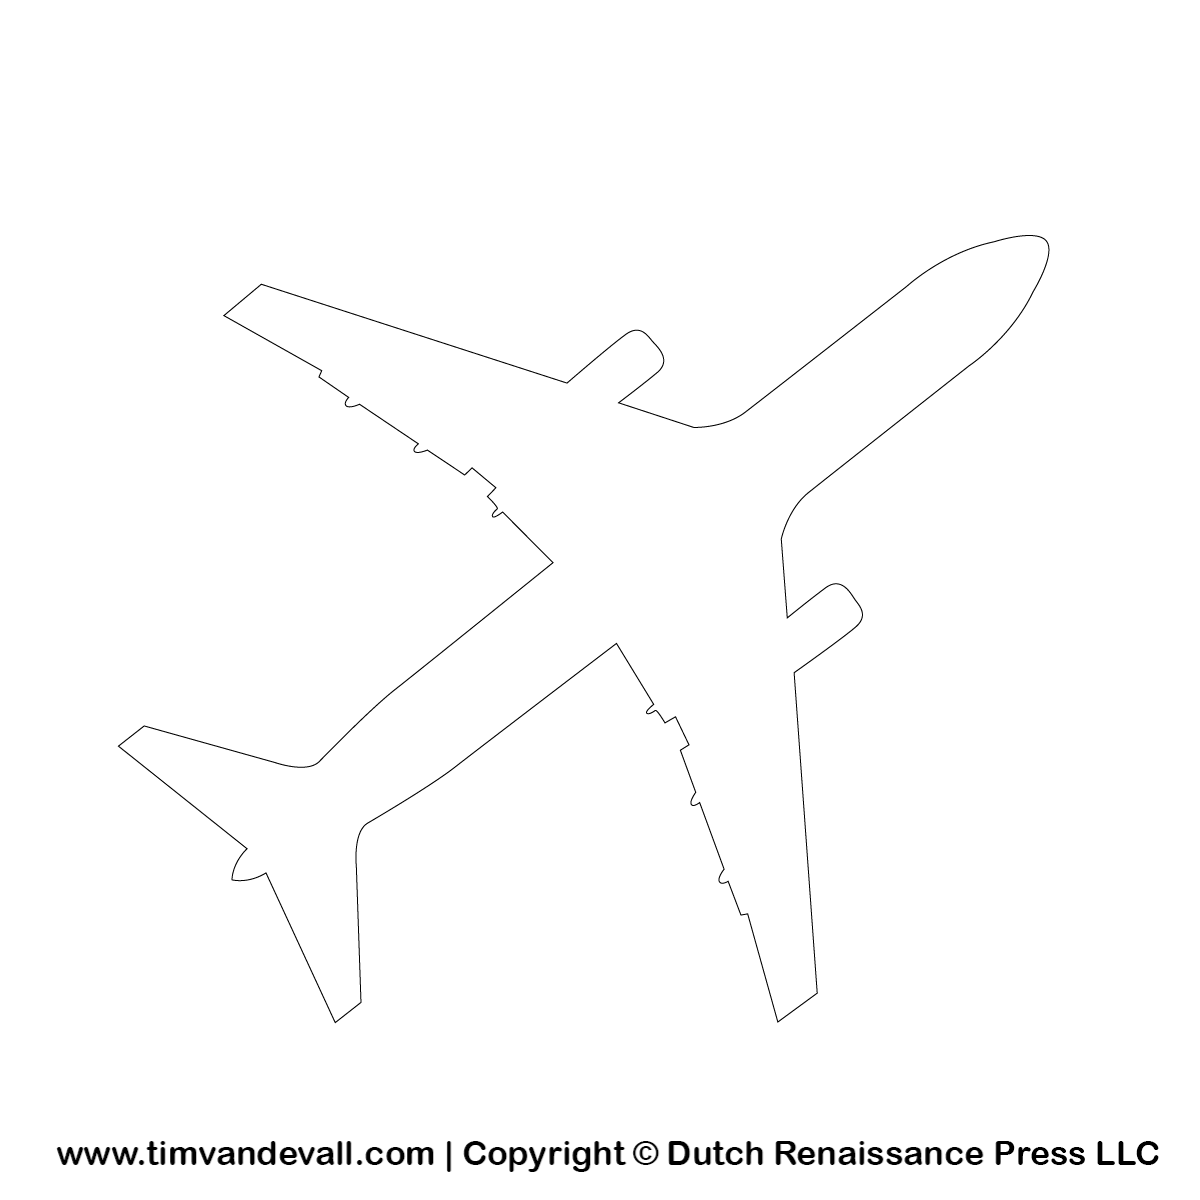 Free airplane silhouette stencil and outline clipart for ...